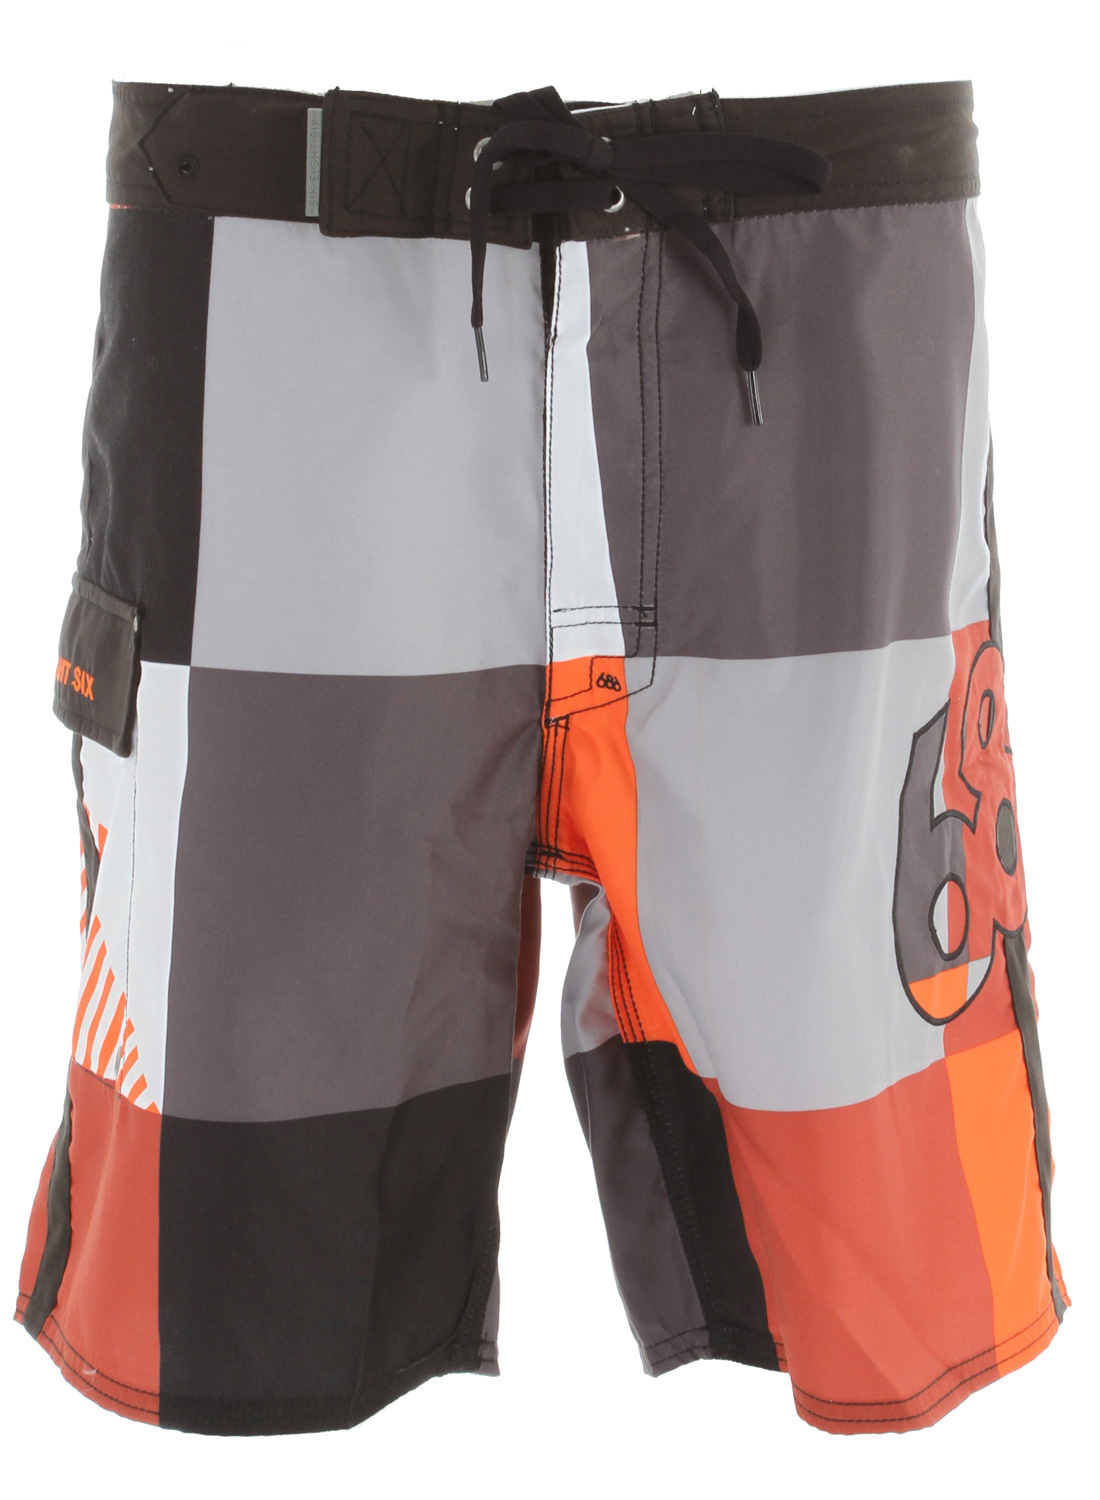 "Surf Key Features of the 686 Cube Boardshorts: 100% polyester micro fiber Spandex fly gusset Waistband stash pocket Angled side leg pocket trimmed with solid black micro fiber Retro style fitting 20"" average outseam - $37.95"